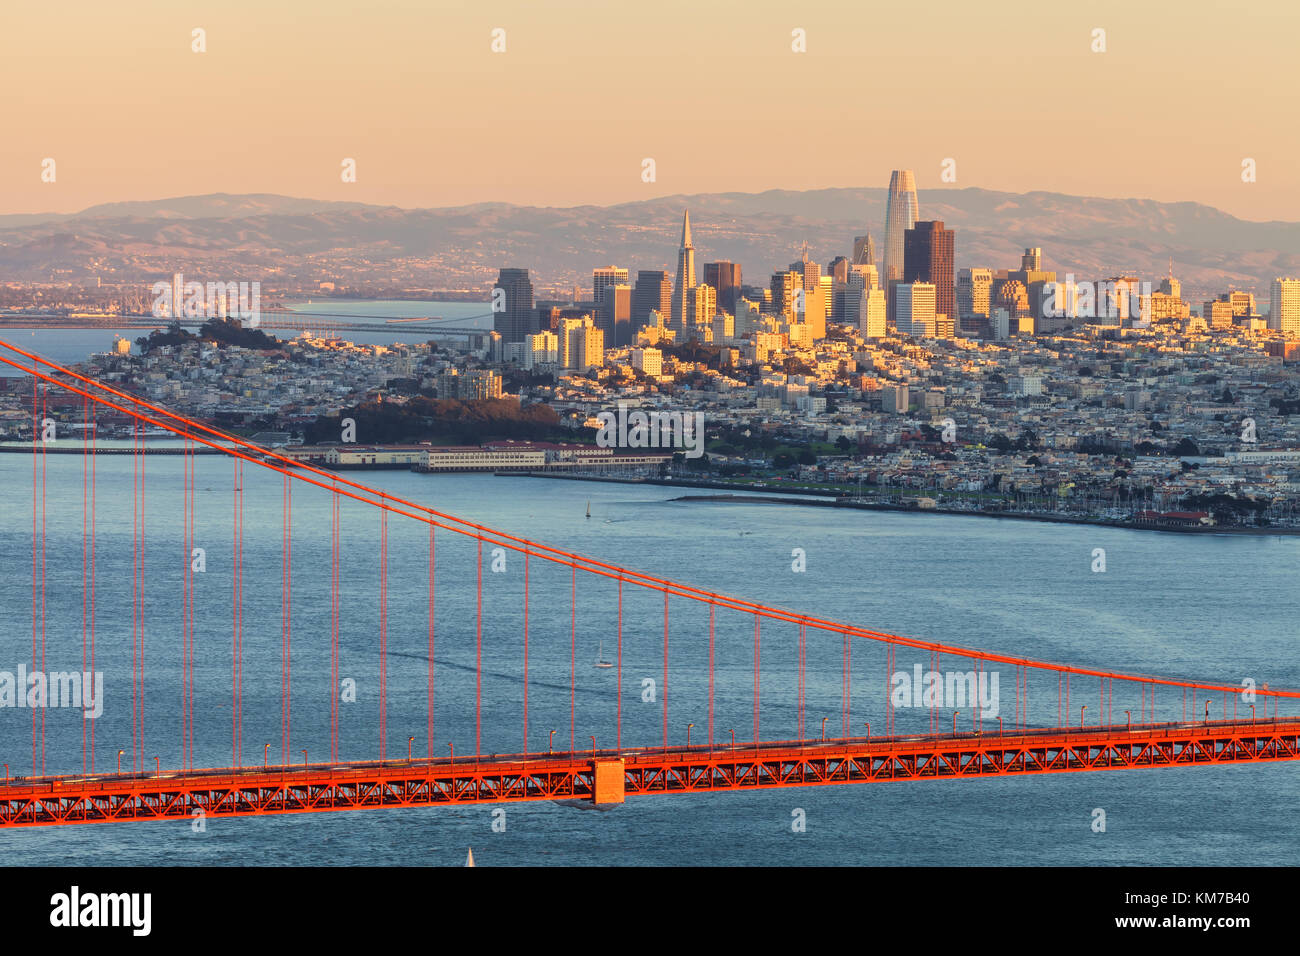 Evening sunlight lit up the San Francisco City high rises, with the Golden Gate Bridge on the foreground, California, - Stock Image